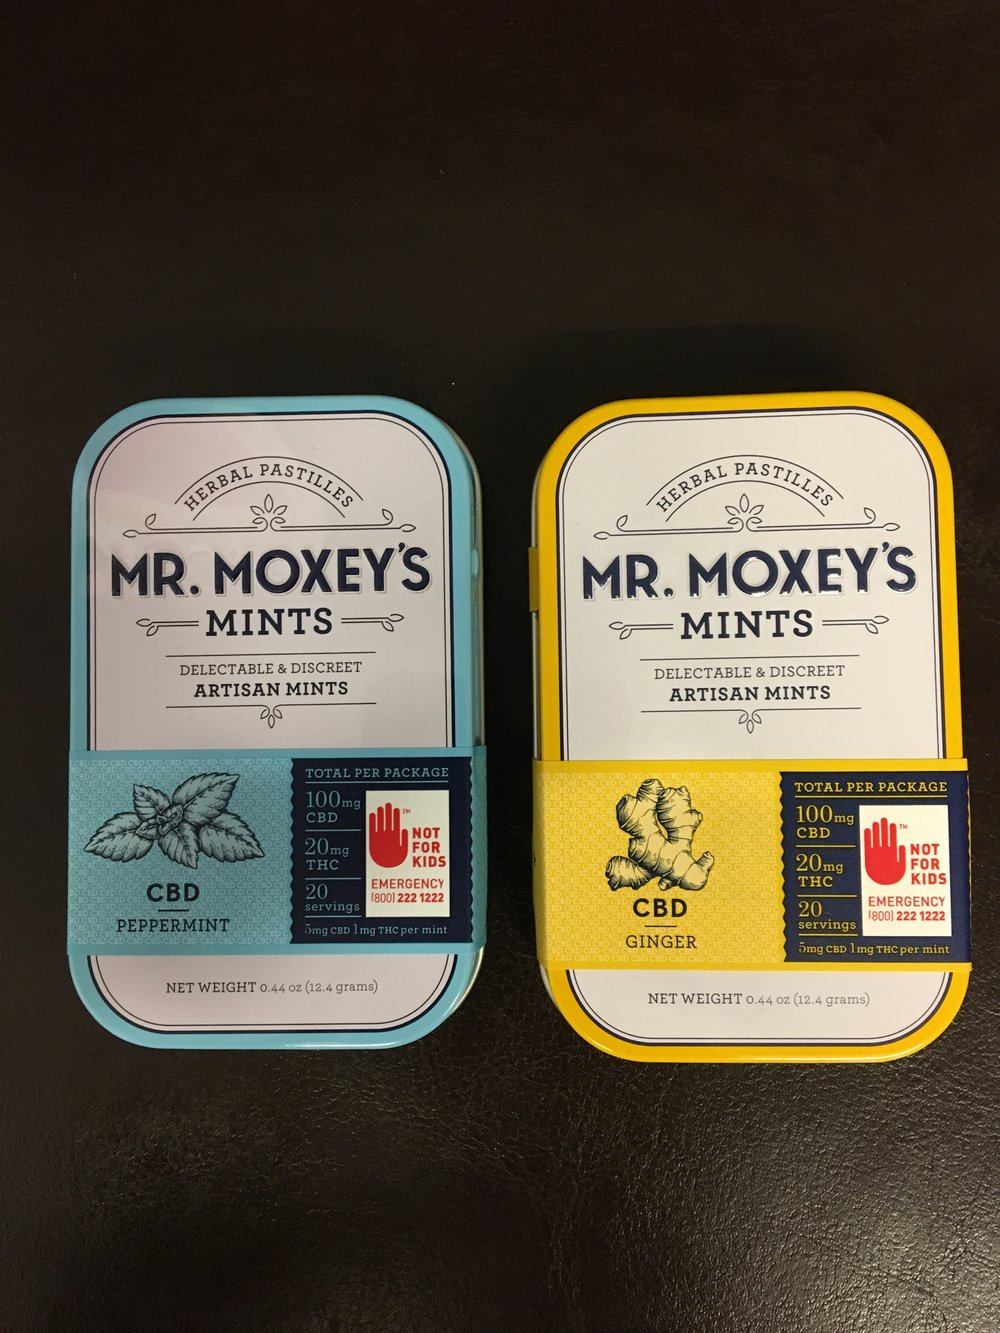 Mr. Moxey's mints ginger peppermint weed exercise cbd cannabis pot